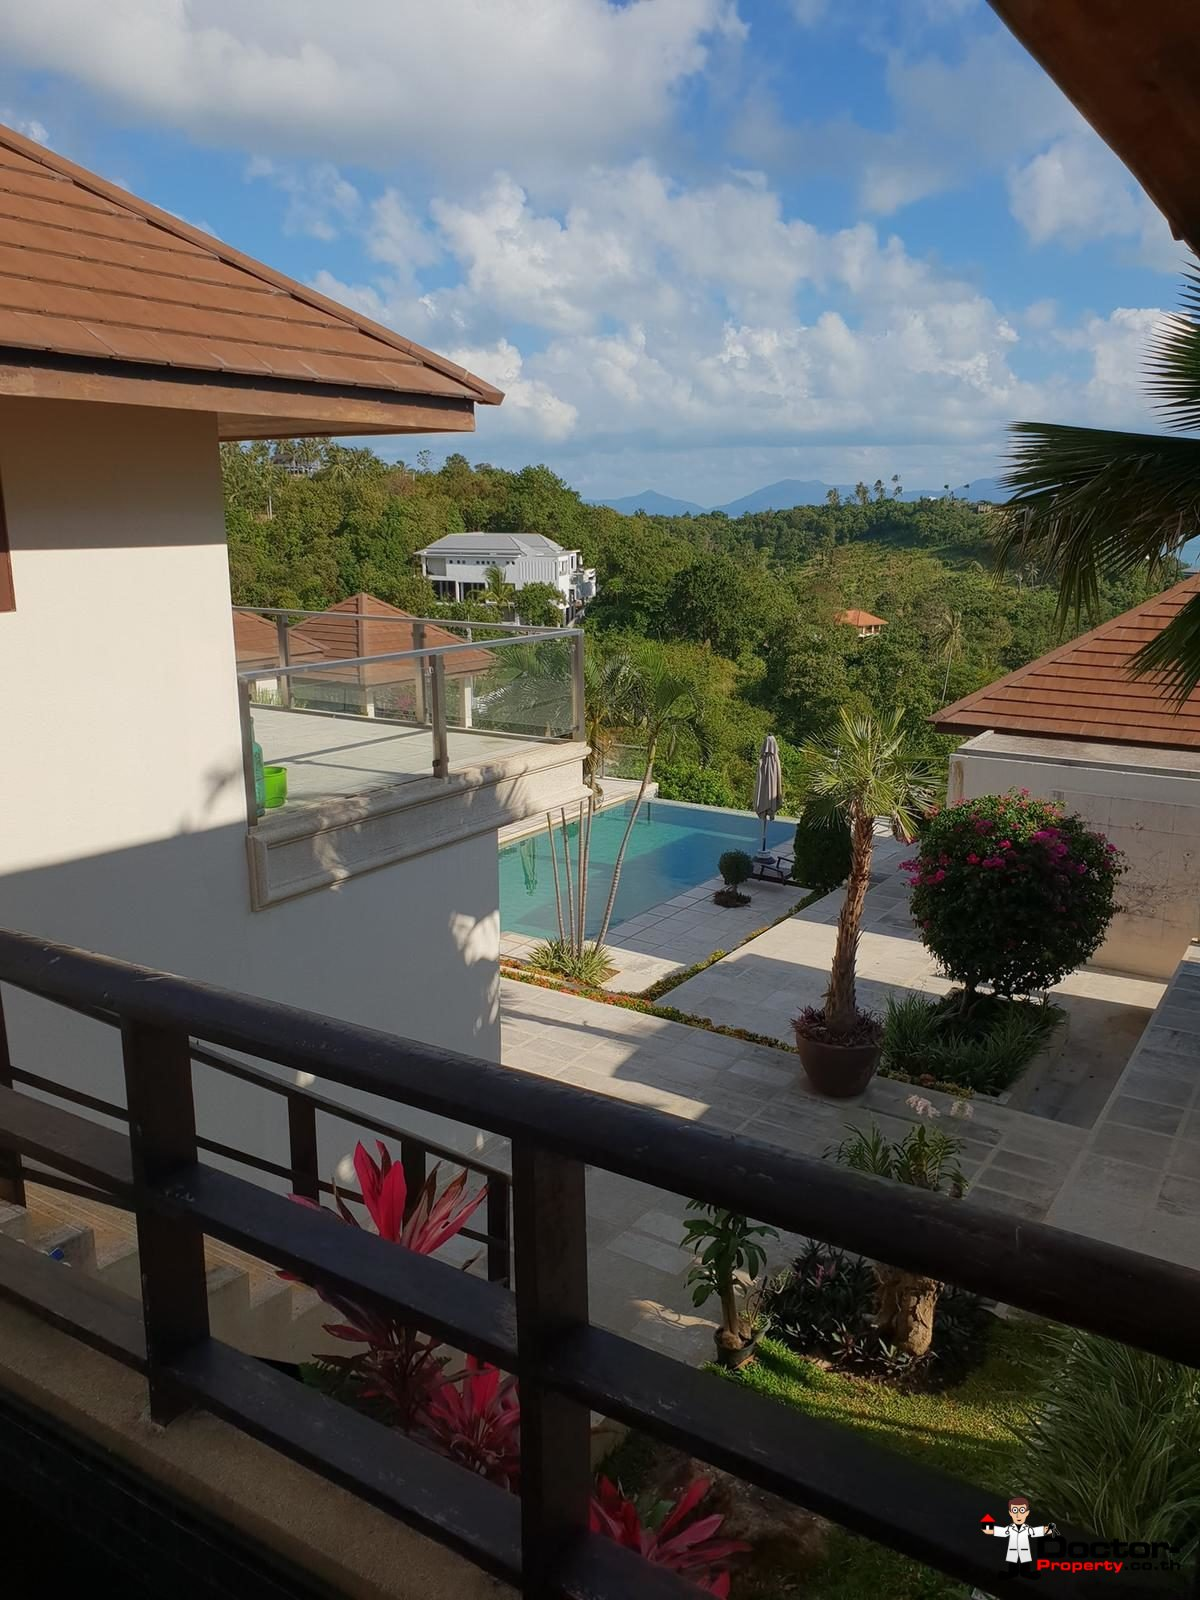 6 Bedroom Villa with Sea View - Bophut - Koh Samui - for sale 9